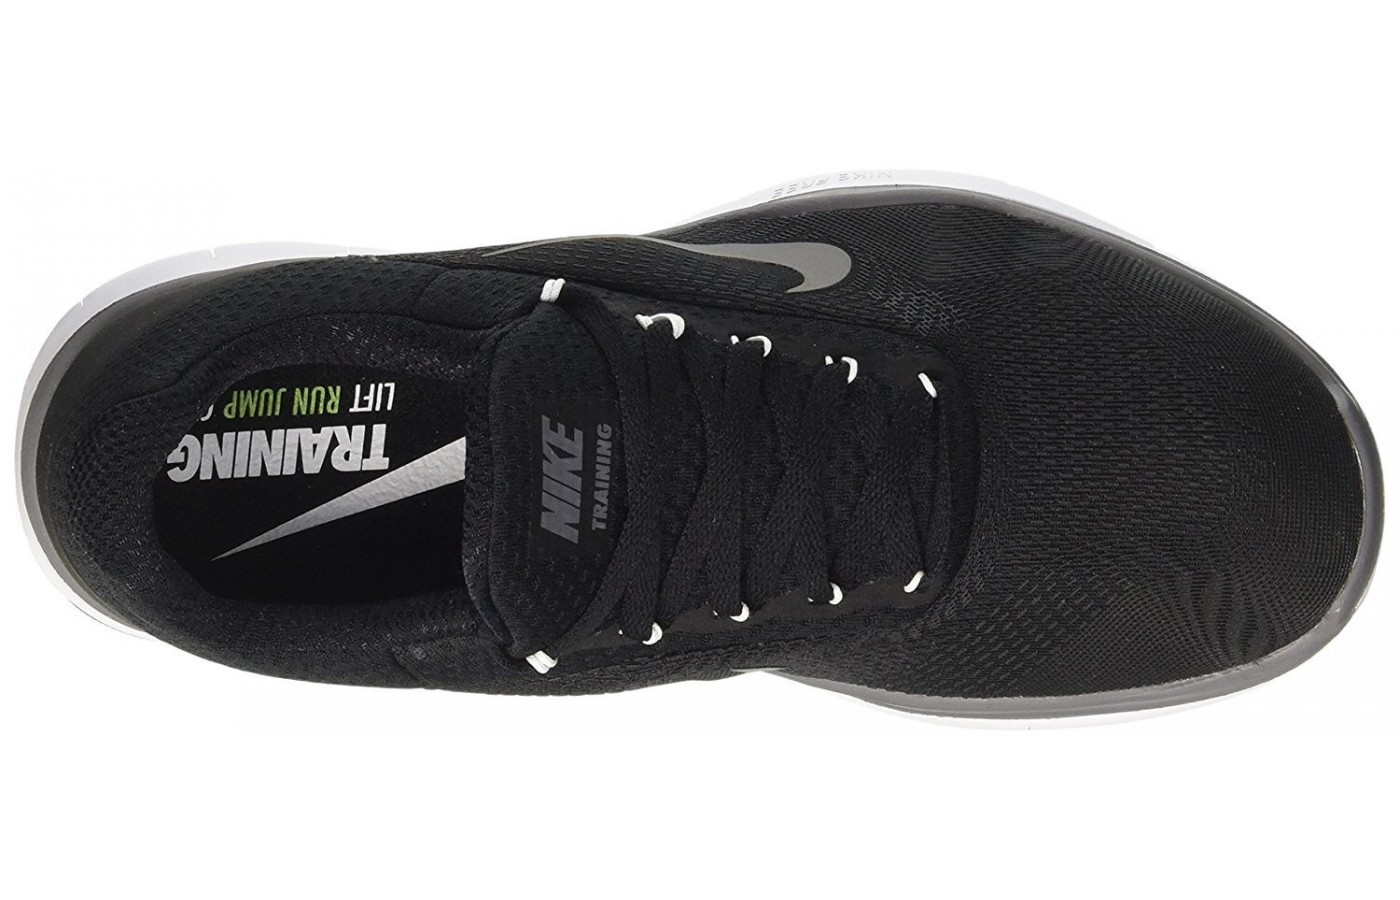 The Nike Free Trainer V7 features Flywire technology